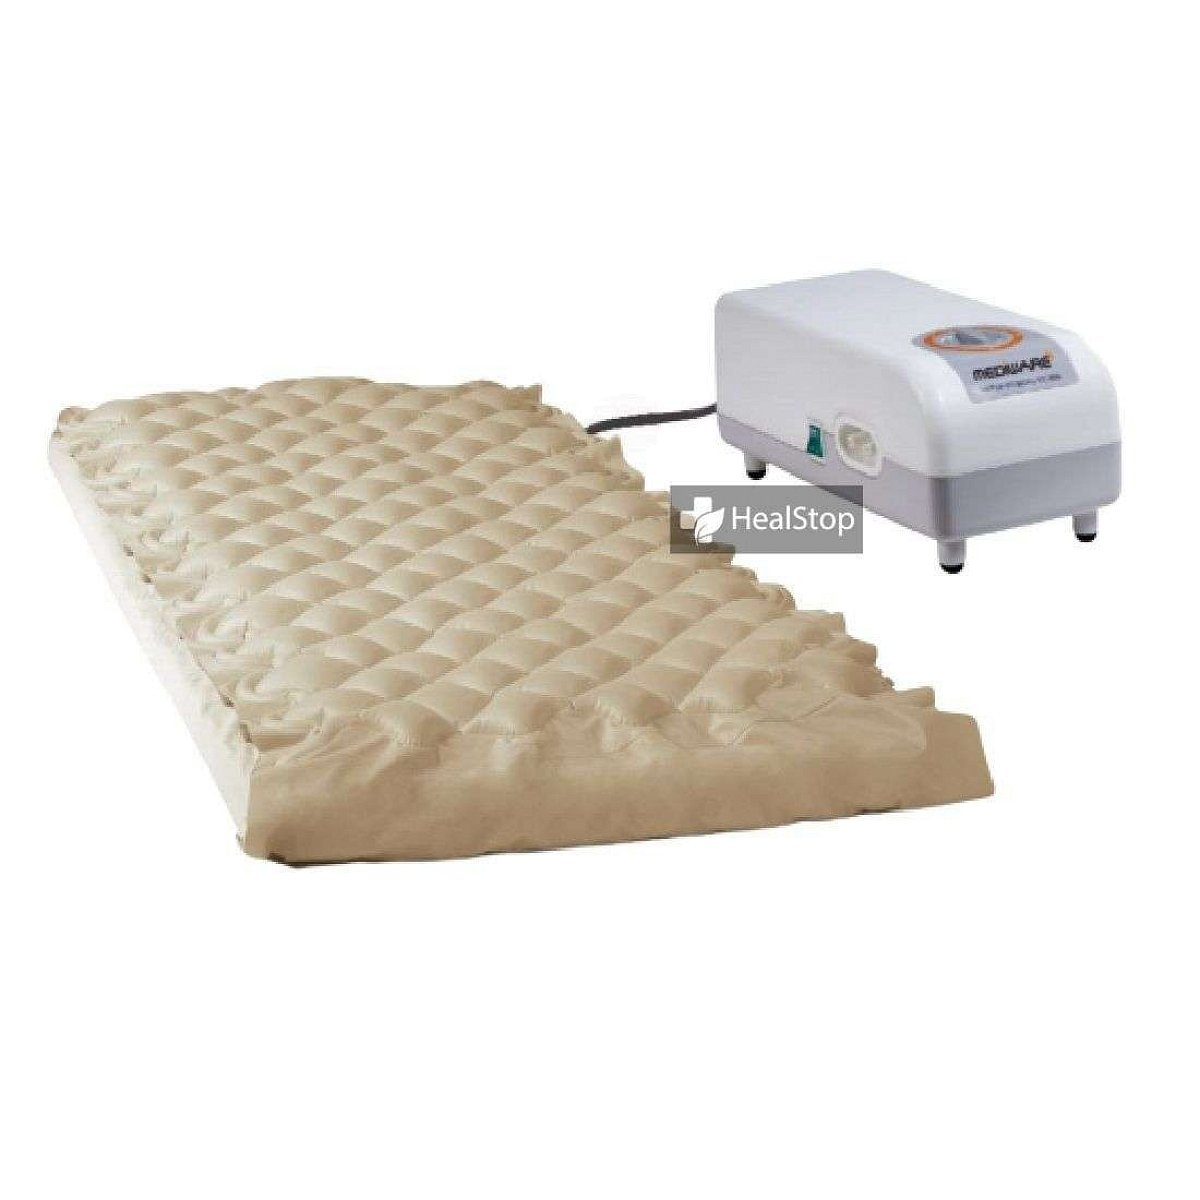 Bubble Type Air Bed for Bed Sores